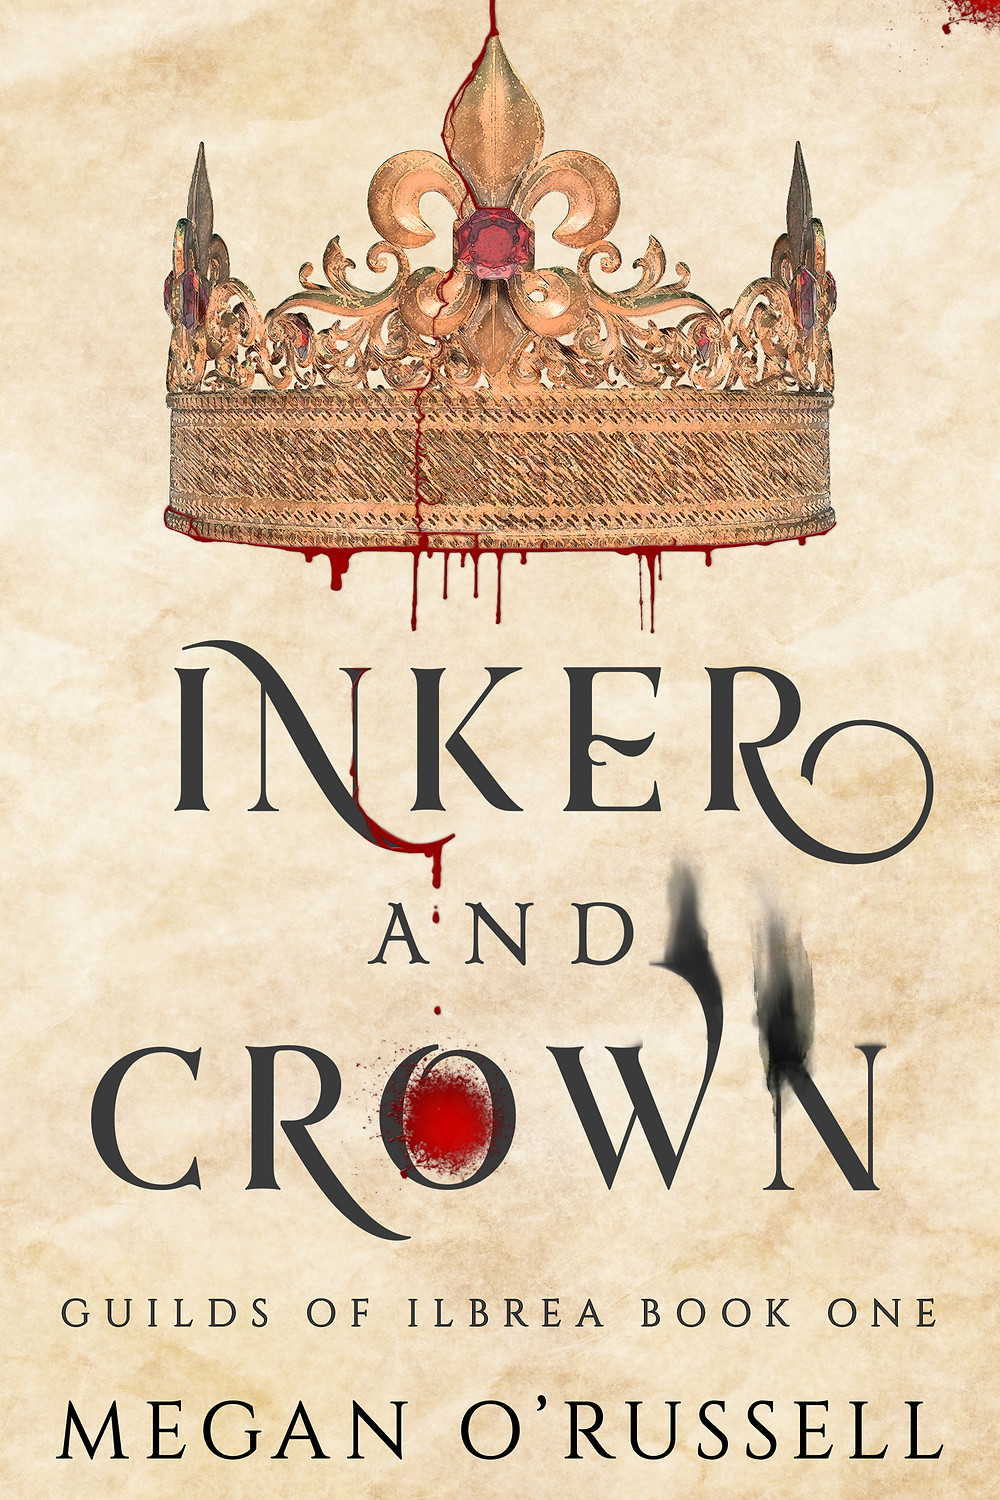 Inker and Crown, Guild of Ilbrea Book One by Megan O'Russell